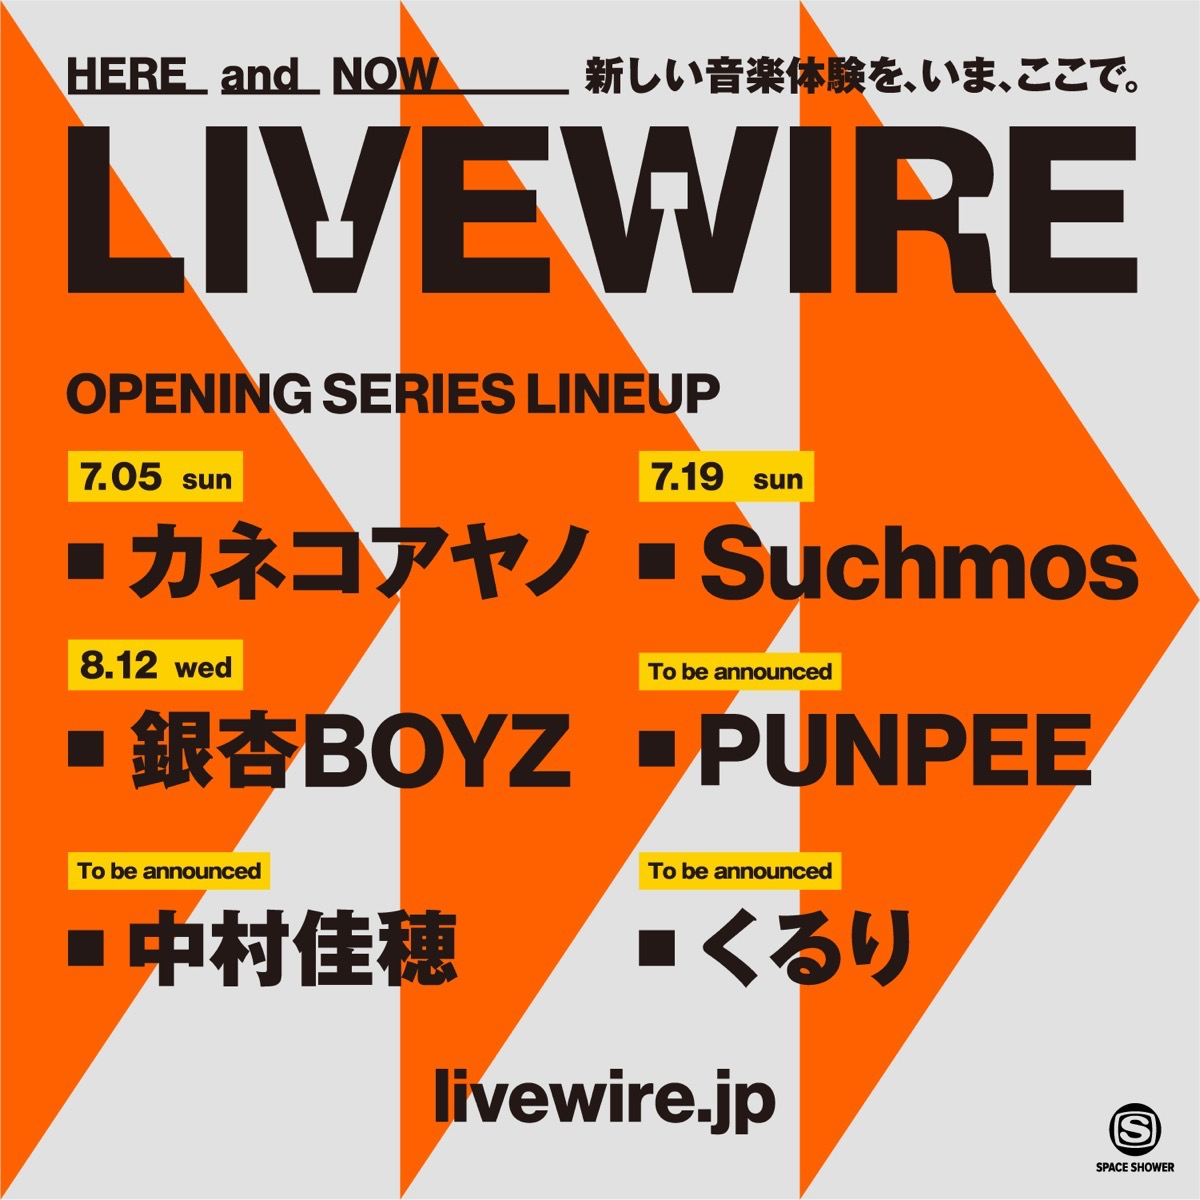 LIVEWIRE opening